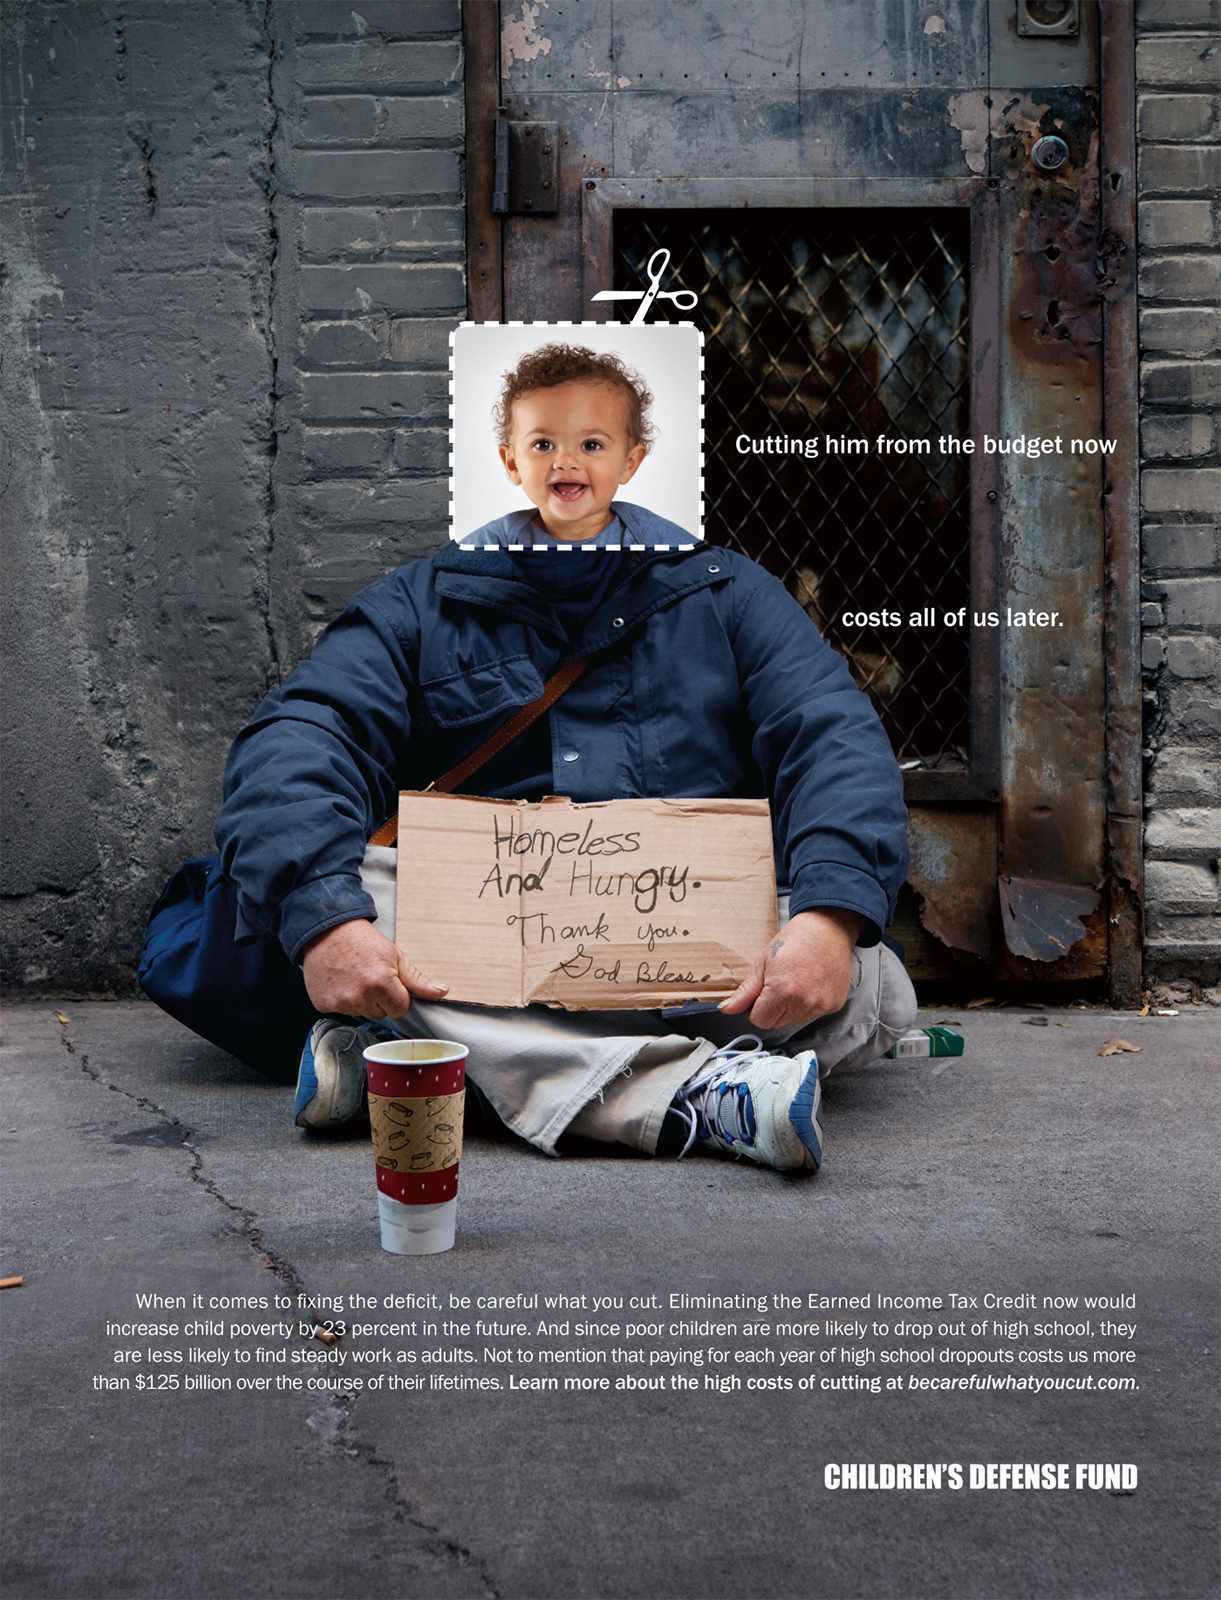 French Ads Will Inform the Public When an Image Has Been Photoshopped